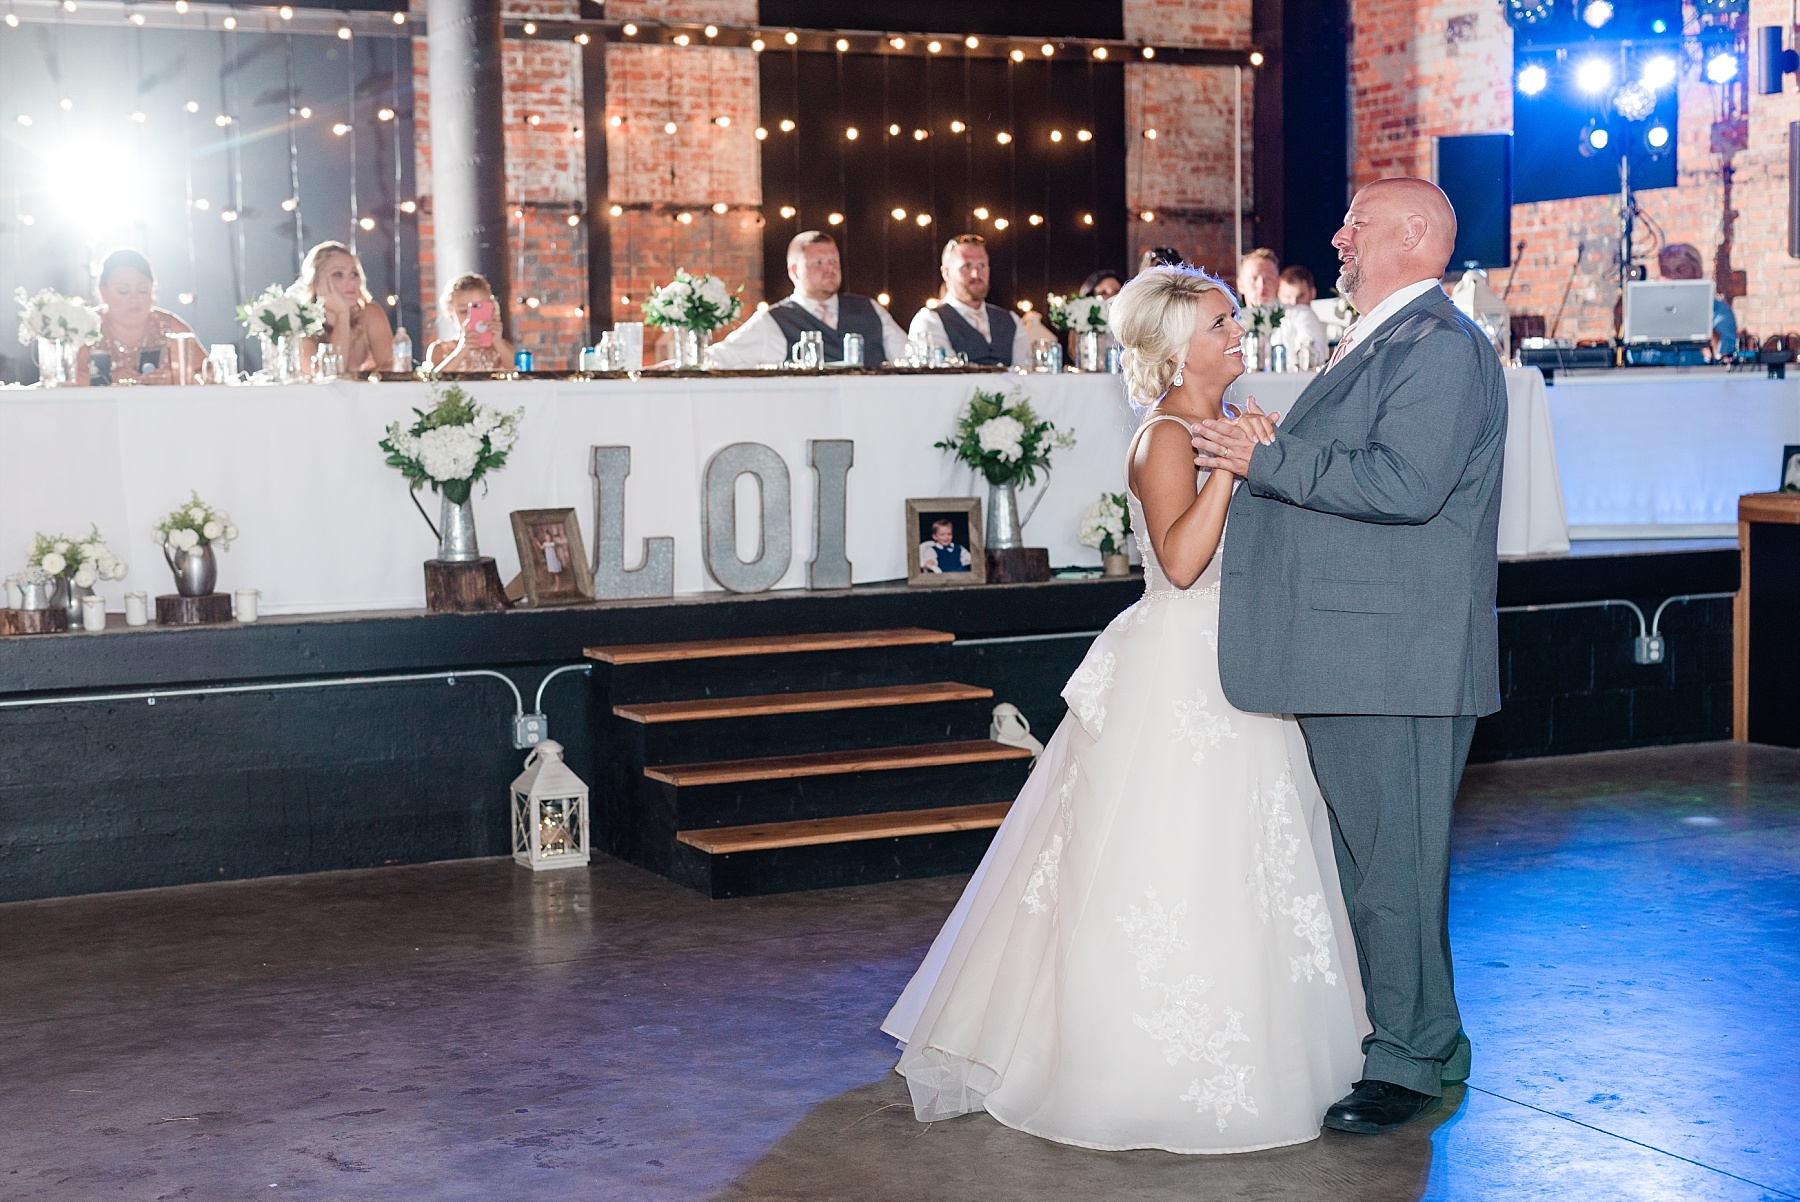 Rose Gold, White, and Greenery High Class Summer Wedding at The Millbottom in Downtown Jefferson City by Kelsi Kliethermes Photography_0053.jpg